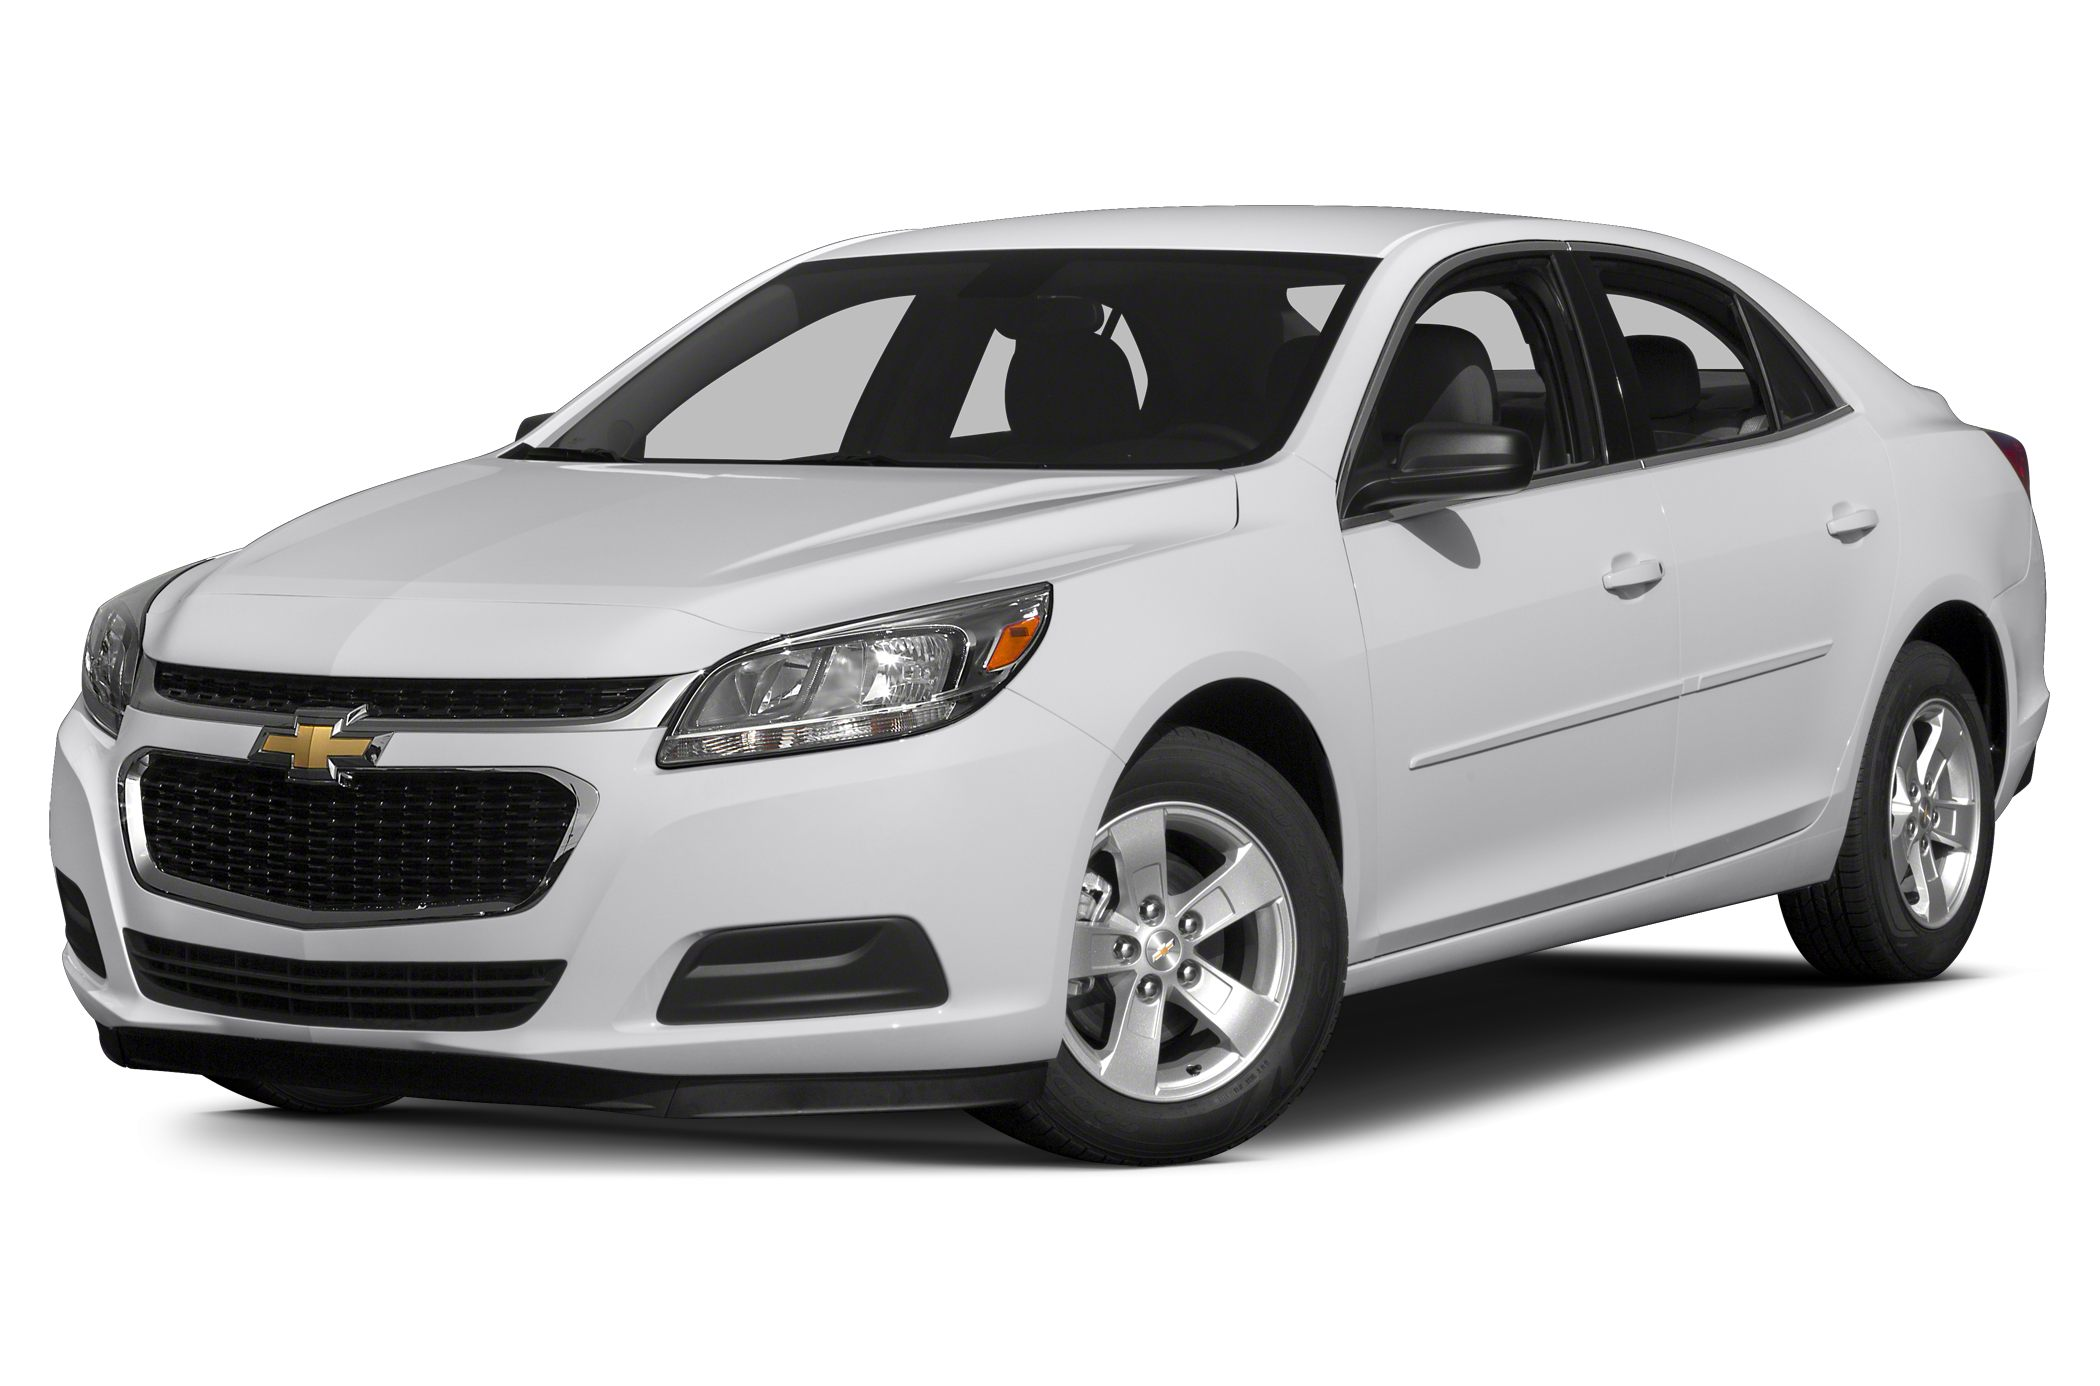 2015 Chevrolet Malibu LS Sedan for sale in Superior for $23,290 with 0 miles.